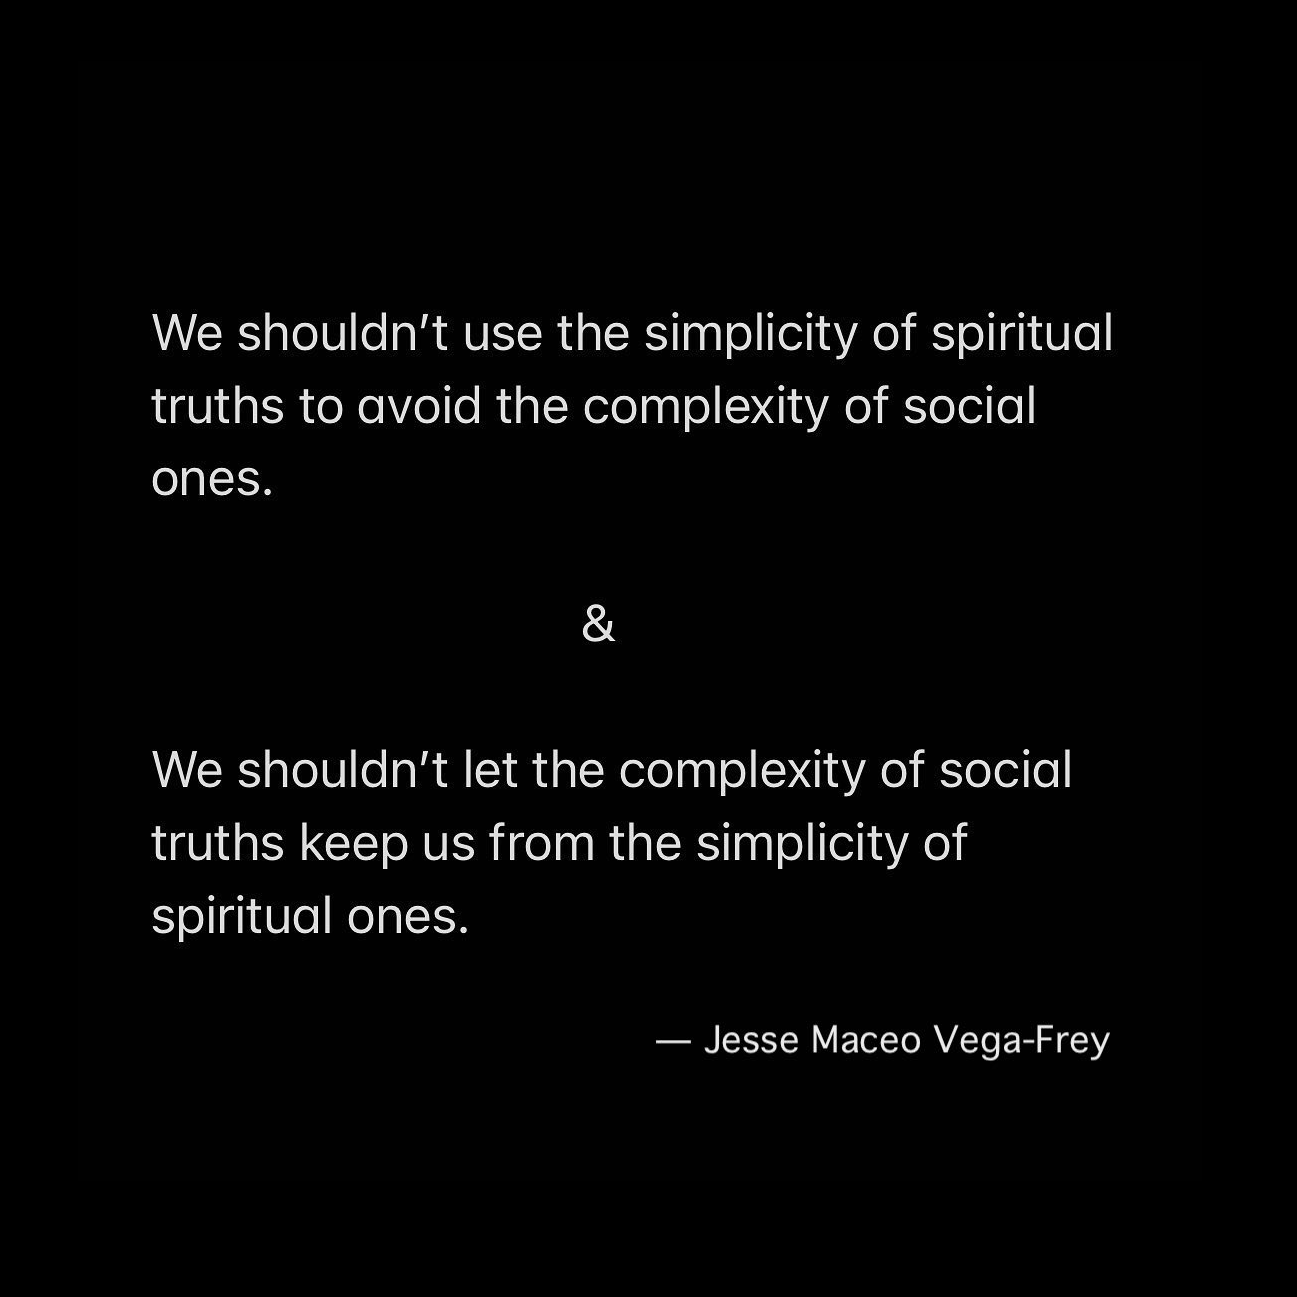 We shouldn't use the simplicity of spiritual truths to avoid the complexity of spiritual ones - Jesse Maceo Vega-Frey quote square